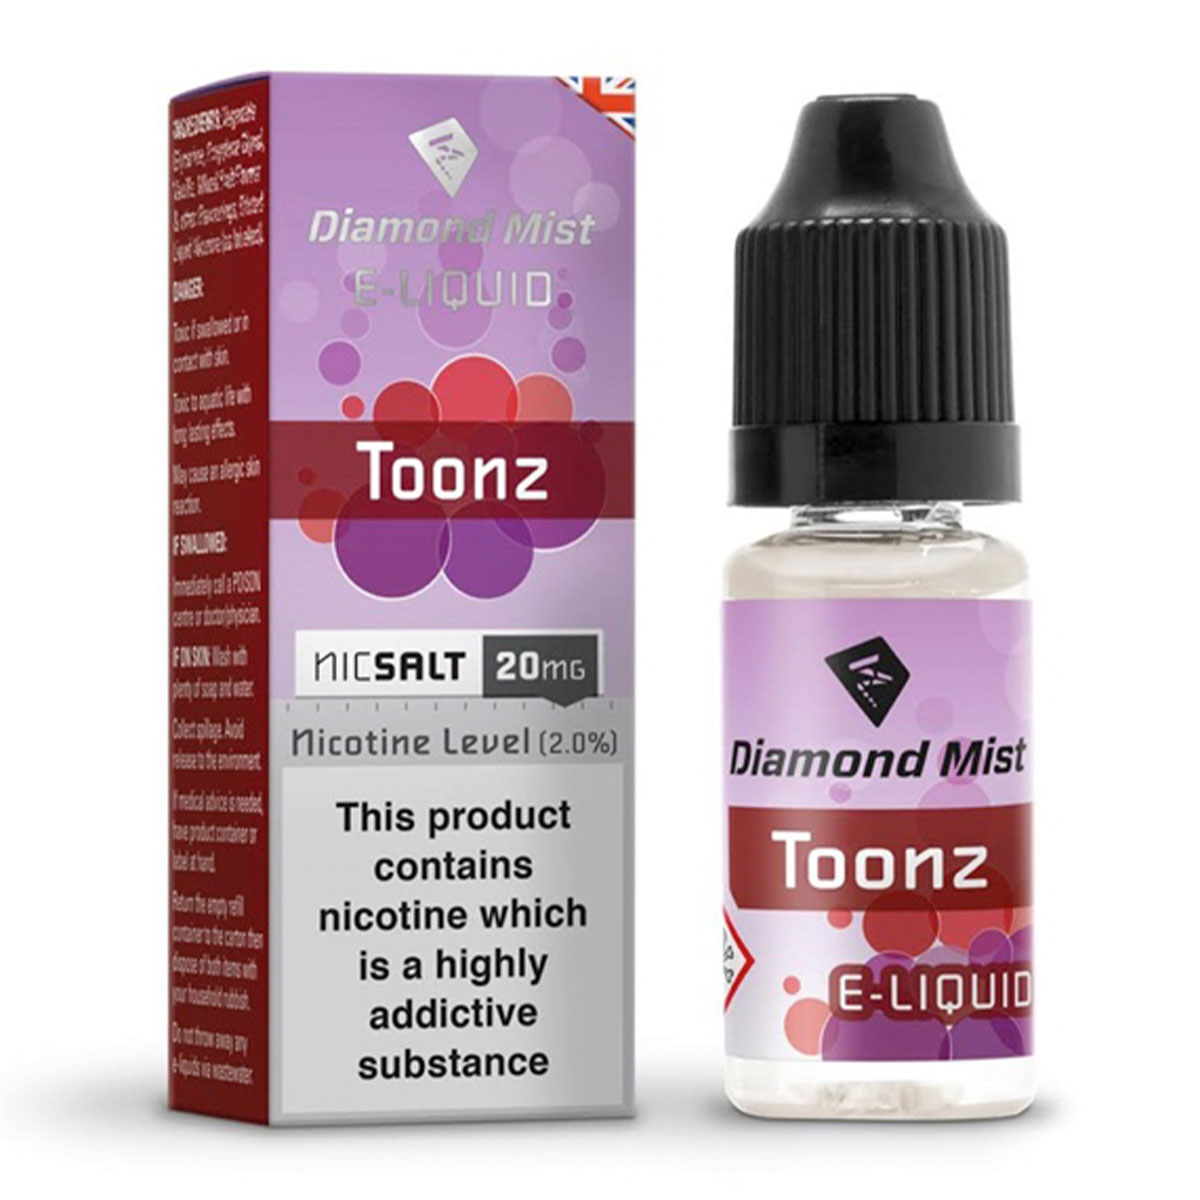 TOONZ NIC SALT BY DIAMOND MIST